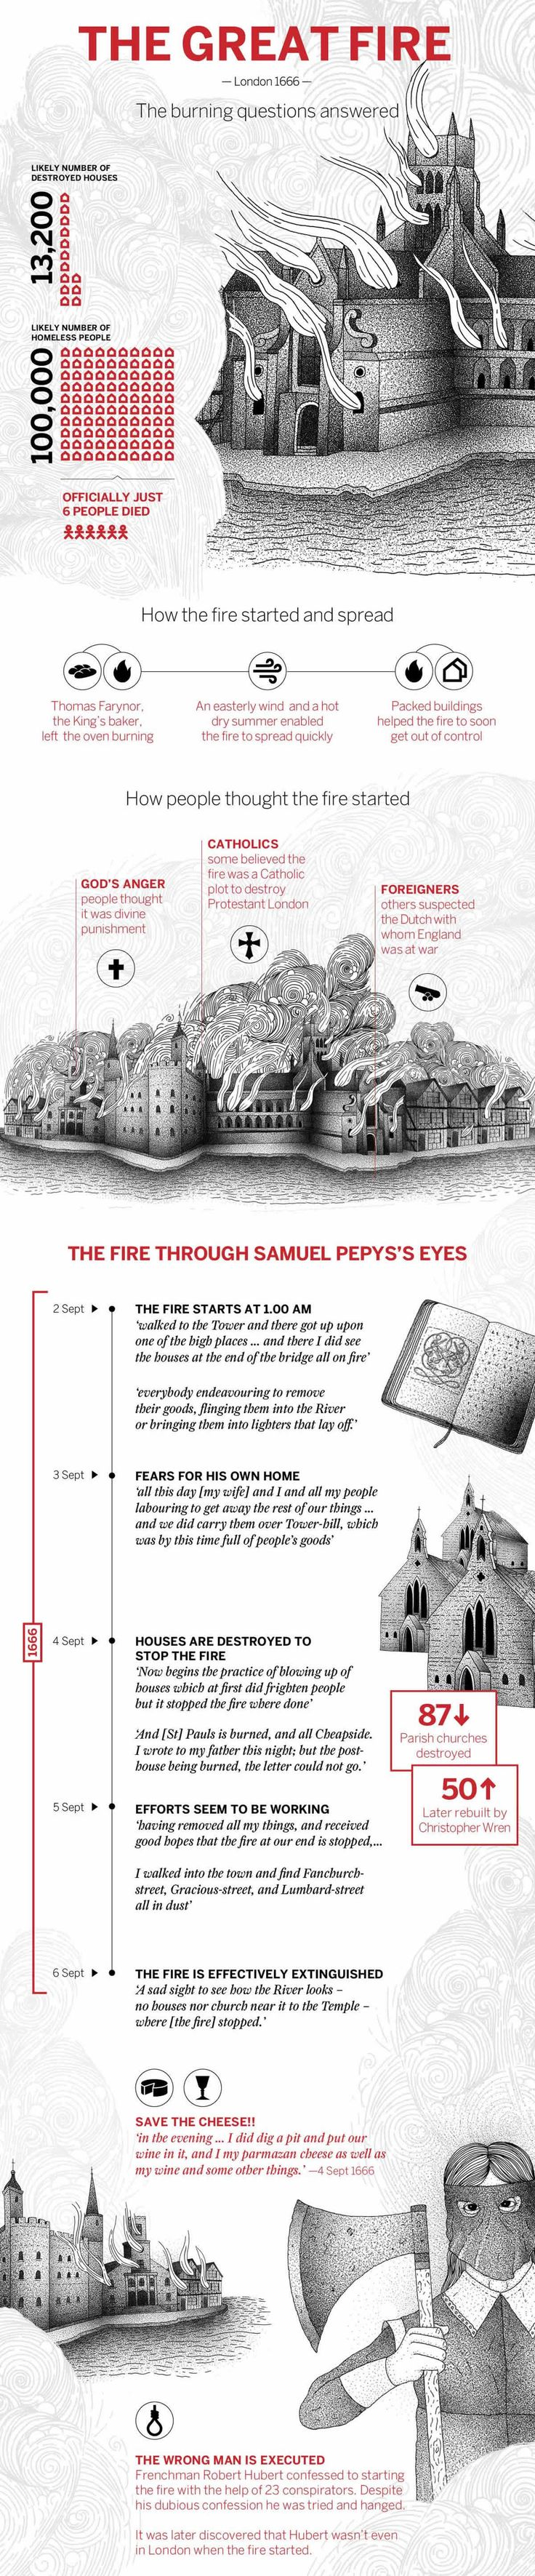 letter formation poems%0A Great Fire of London infographic